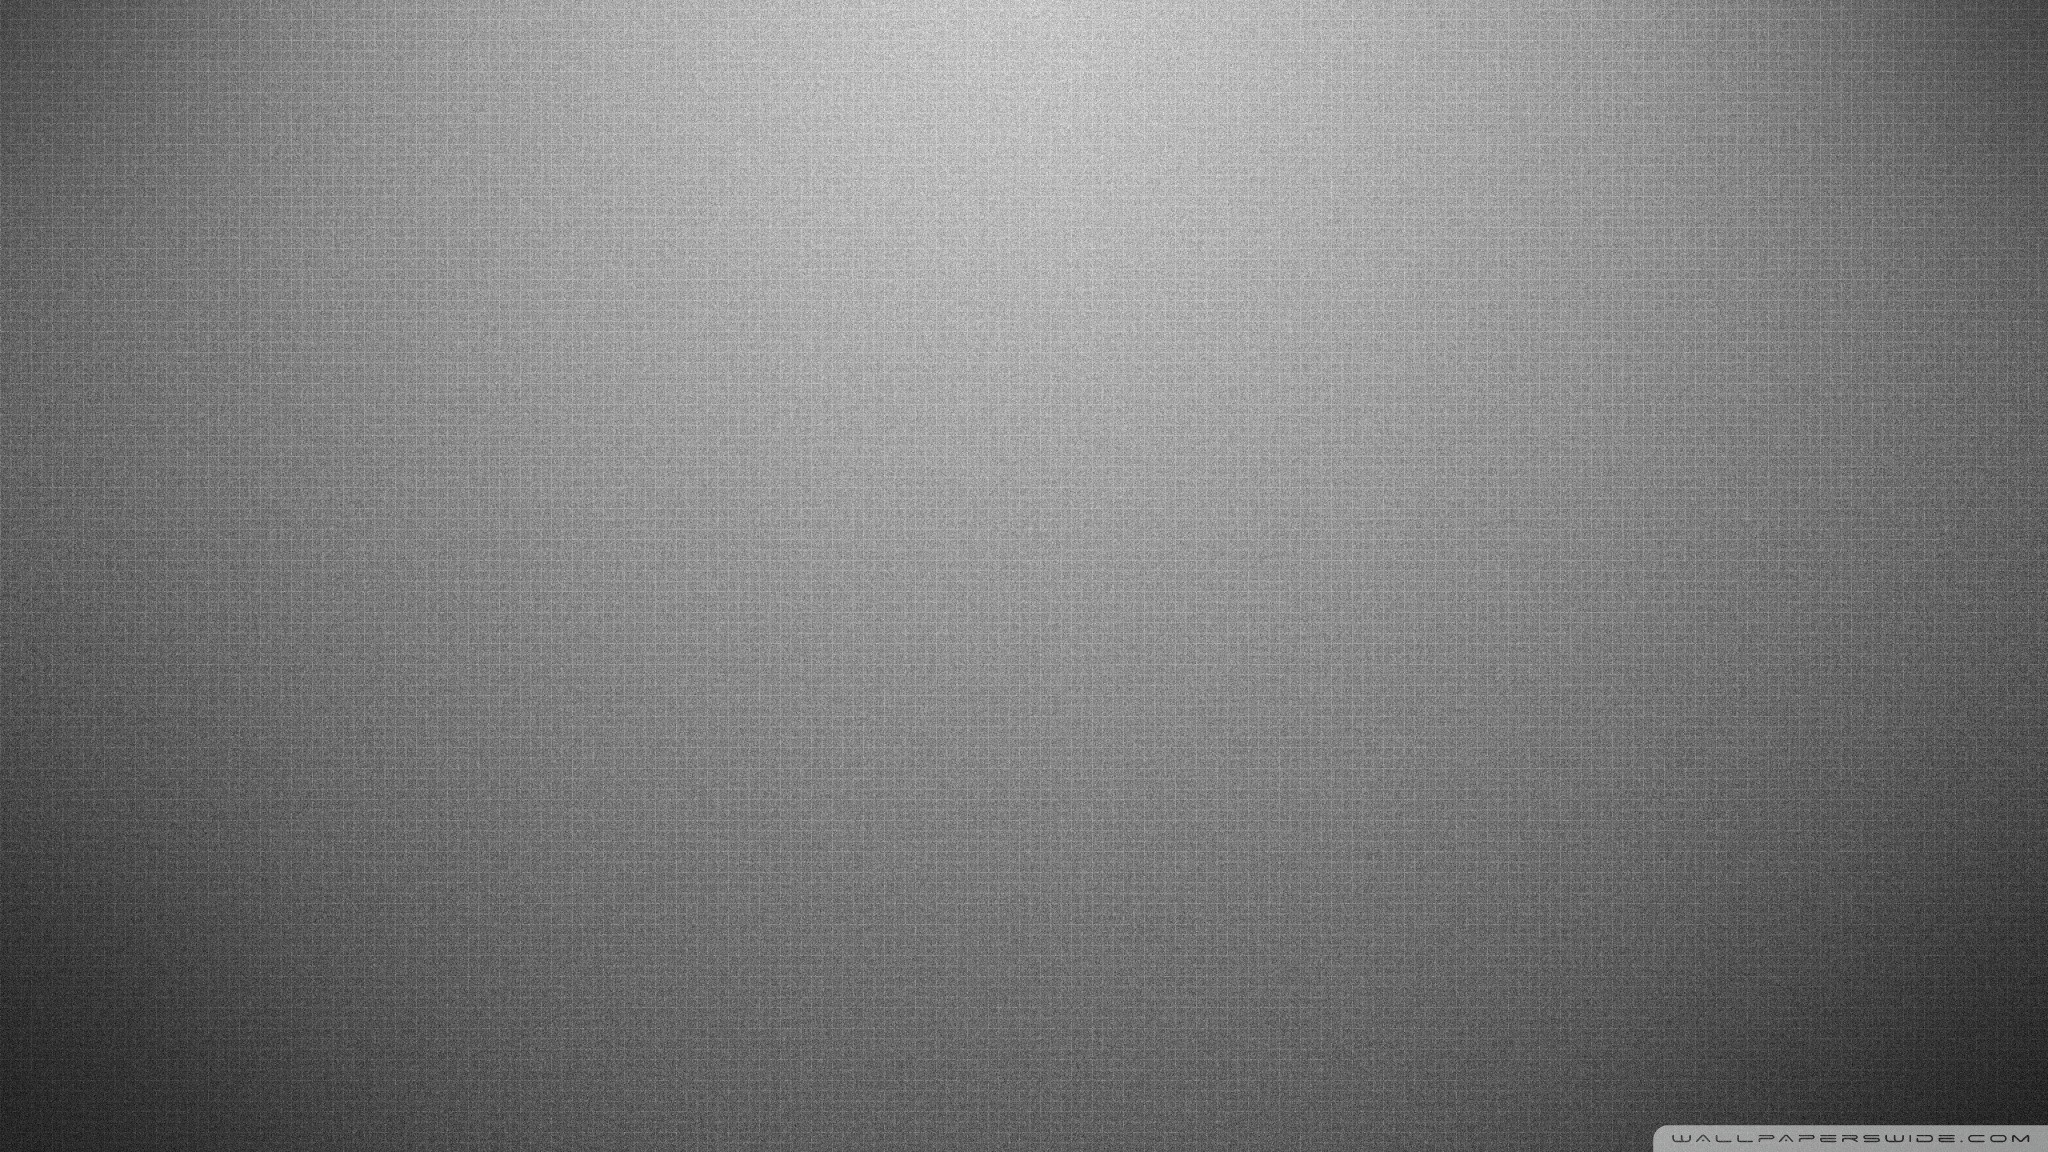 Gray wallpaper ·â' Download free amazing HD backgrounds for